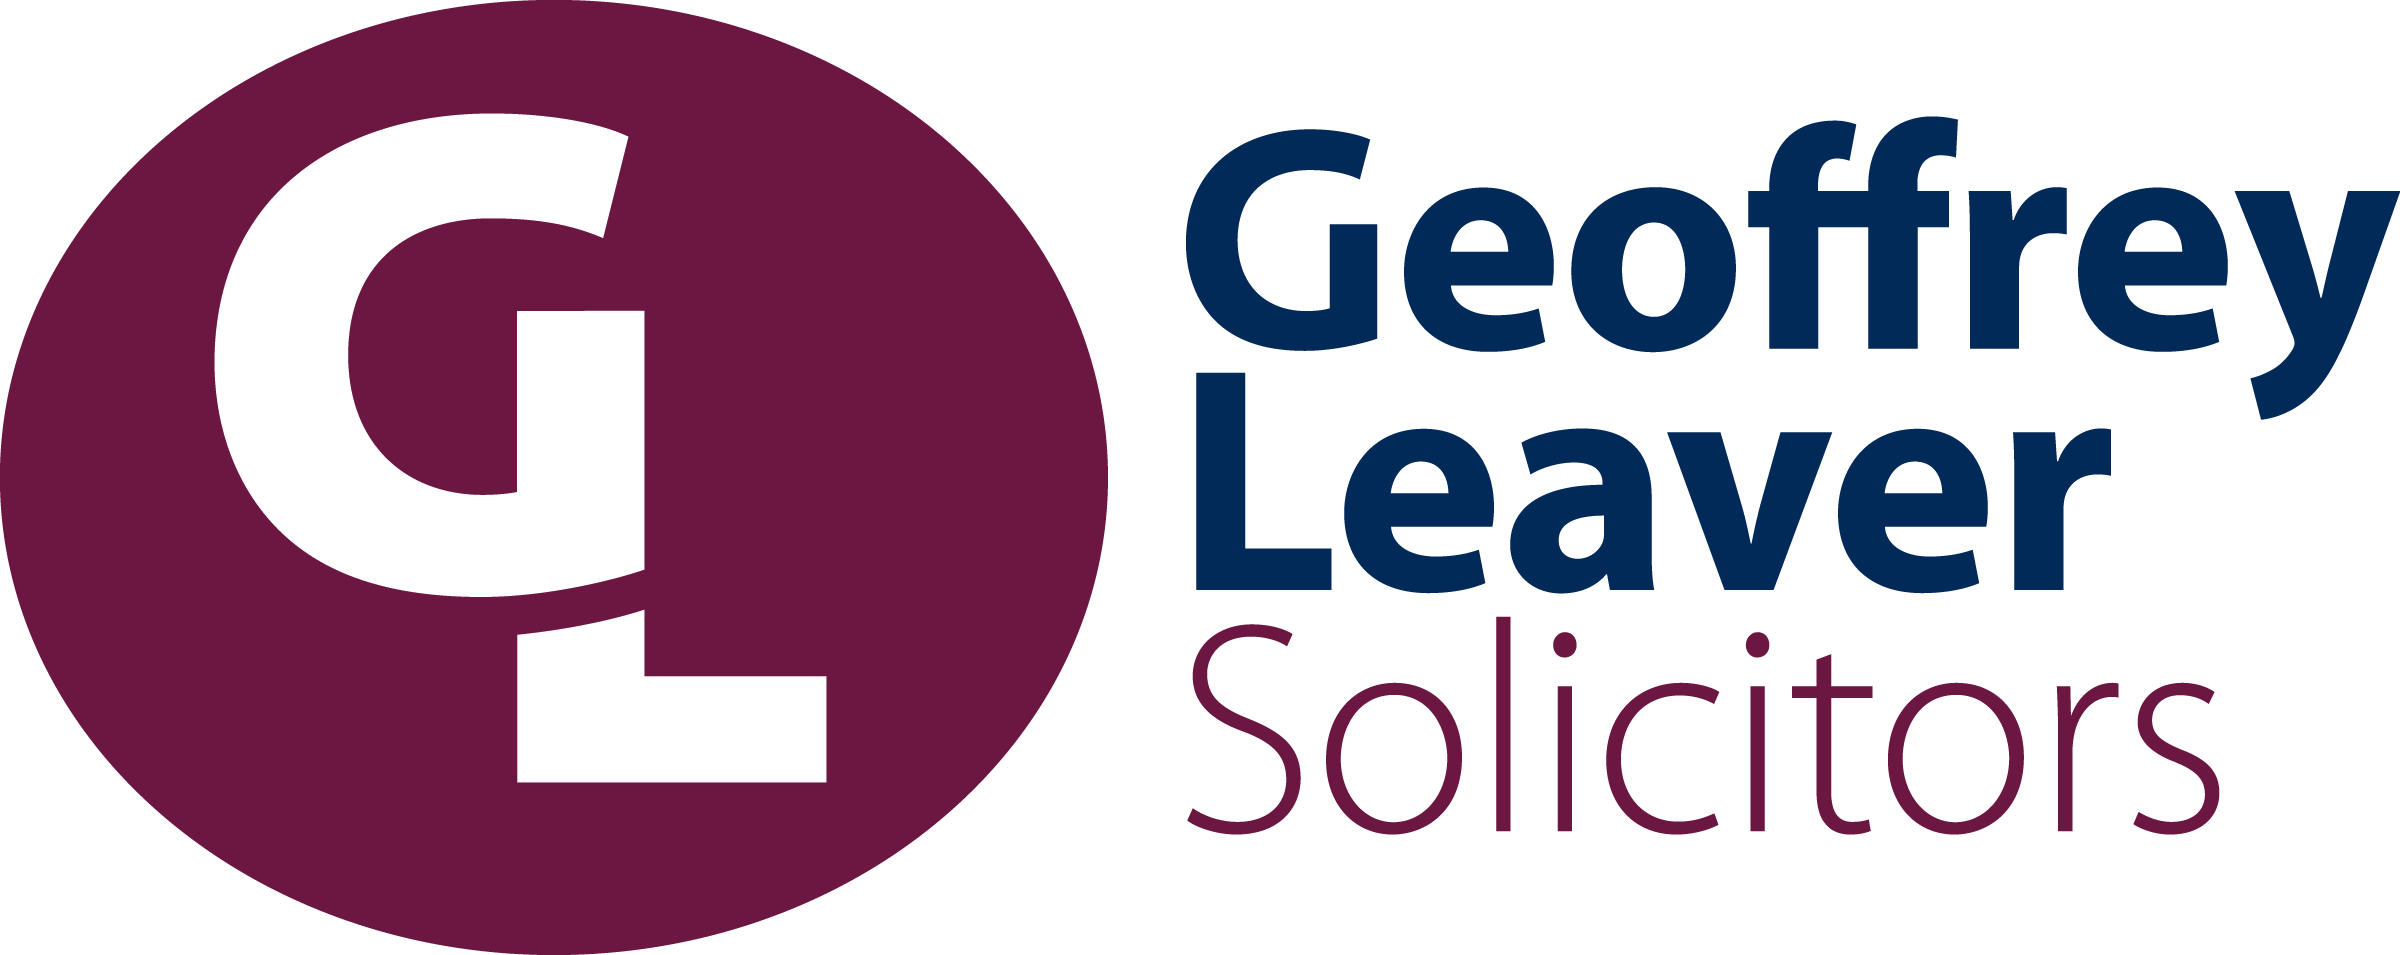 Geoffrey Leaver Solicitors logo